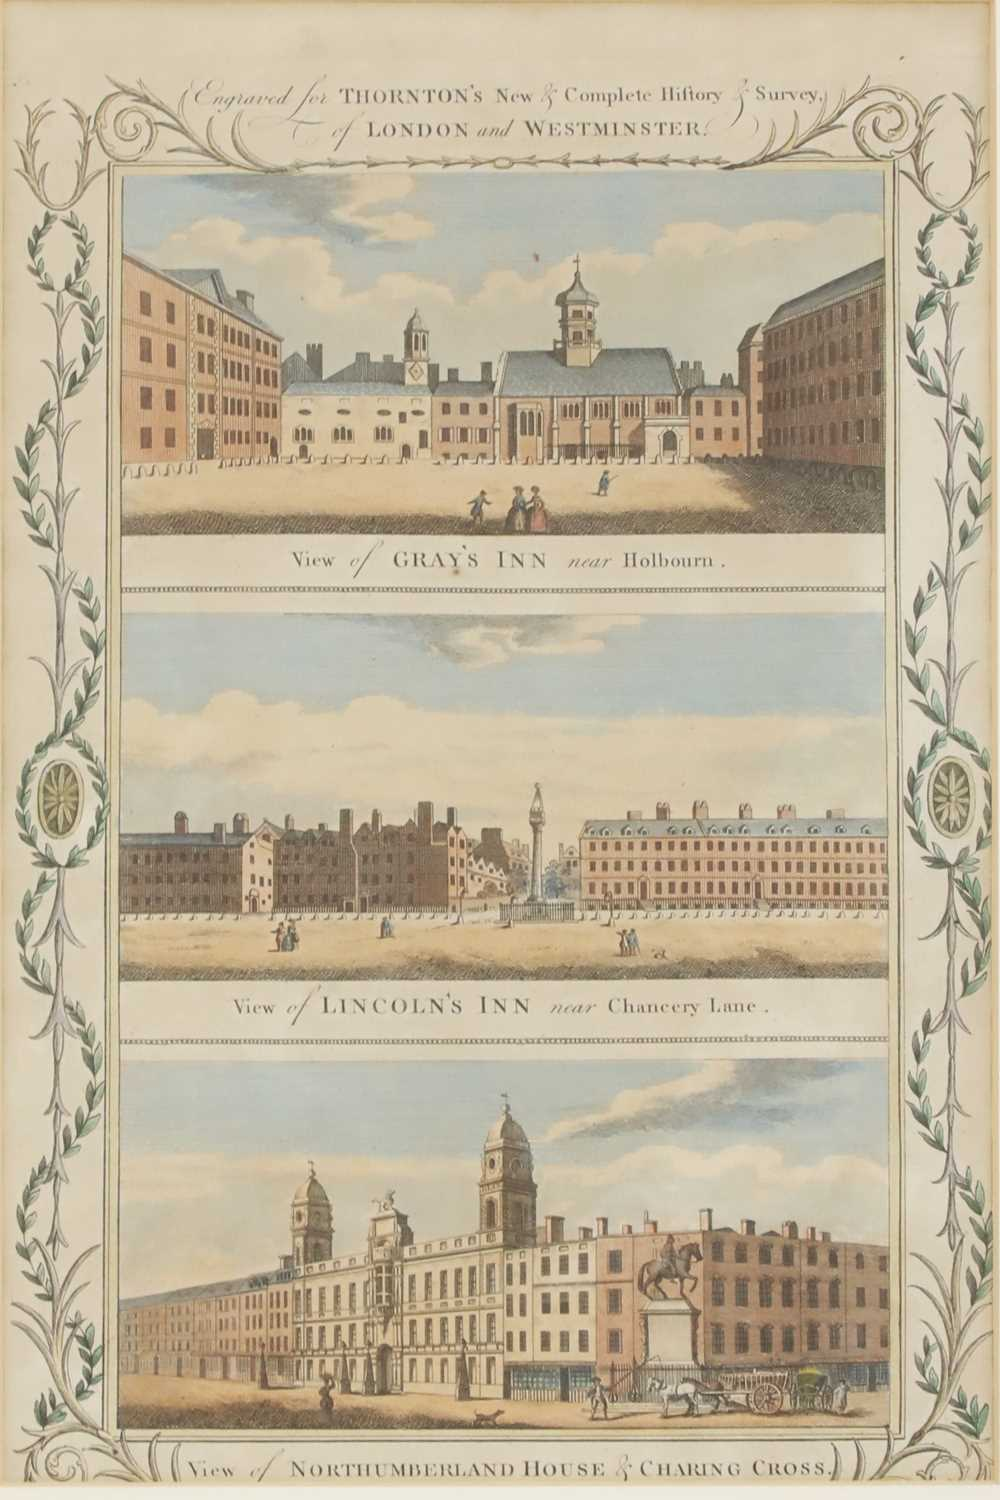 THORNTON'S 'NEW HISTORY & SURVEY OF LONDON AND WESTMINSTER' - Image 5 of 14